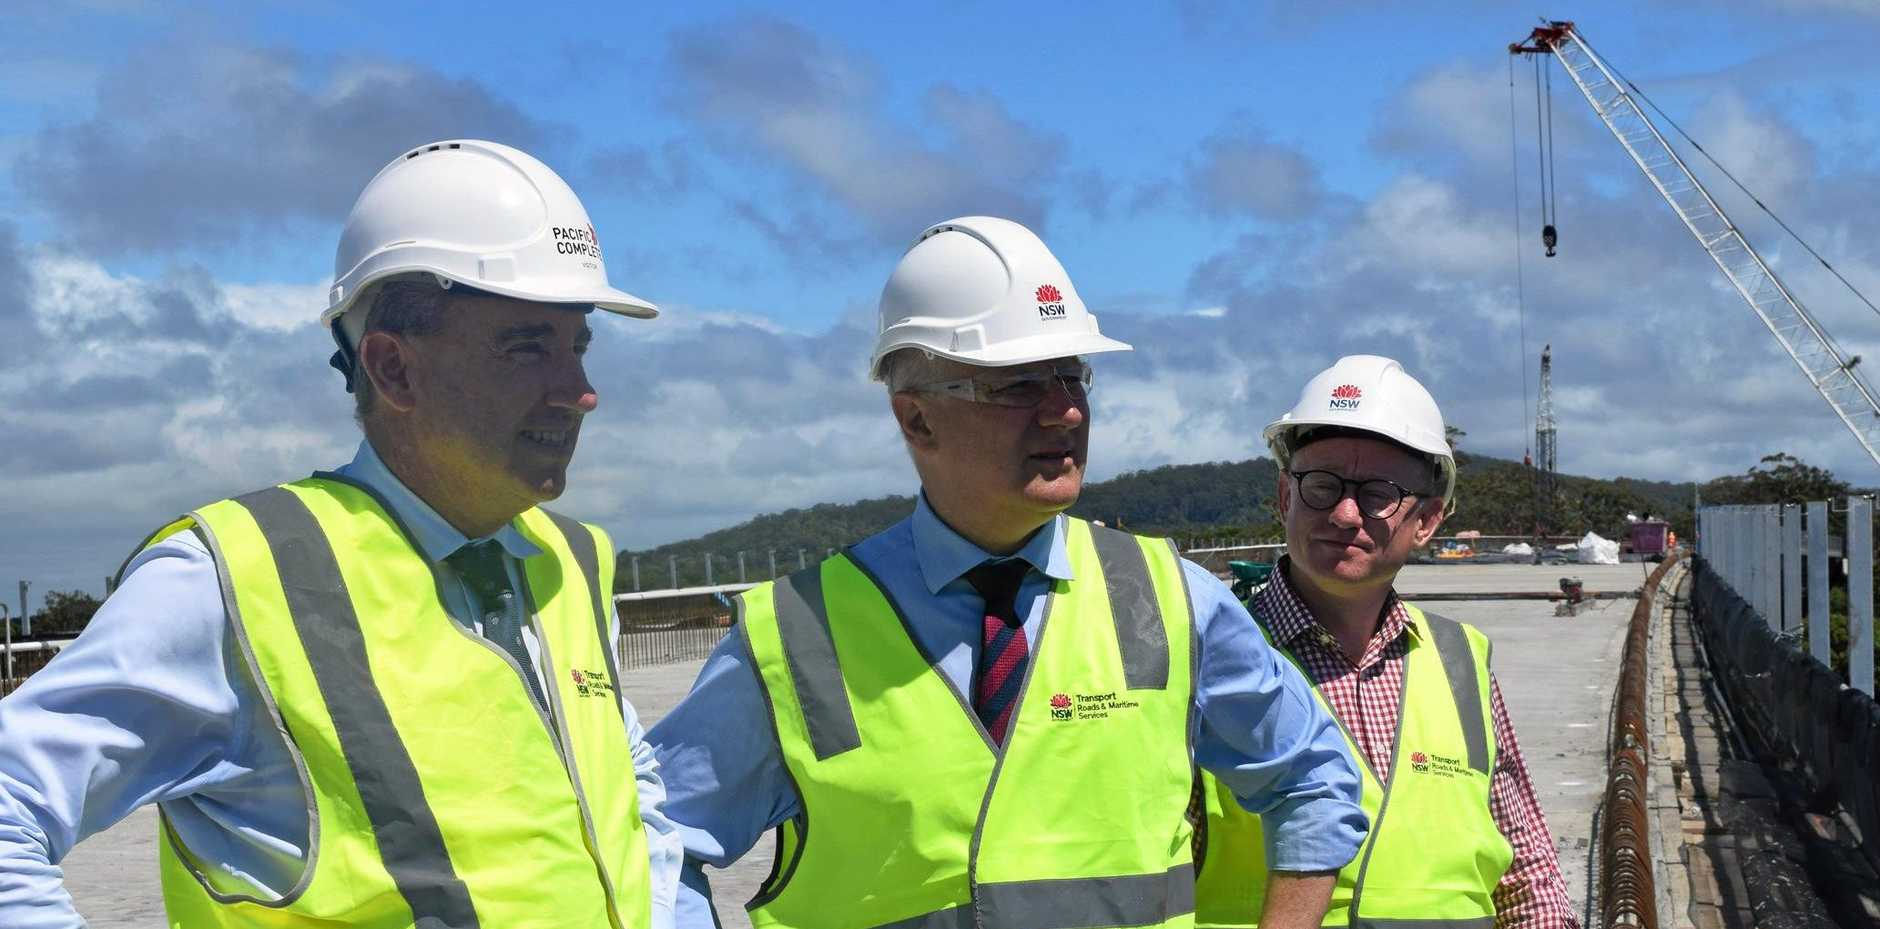 Federal Member for Page Keven Hogan was joined by Acting Prime Minister Michael McCormack and NSW Nationals candidate for Ballina Ben Franklin to mark the milestone of the last girder being placed on the new Richmond River Bridge at Broadwater.